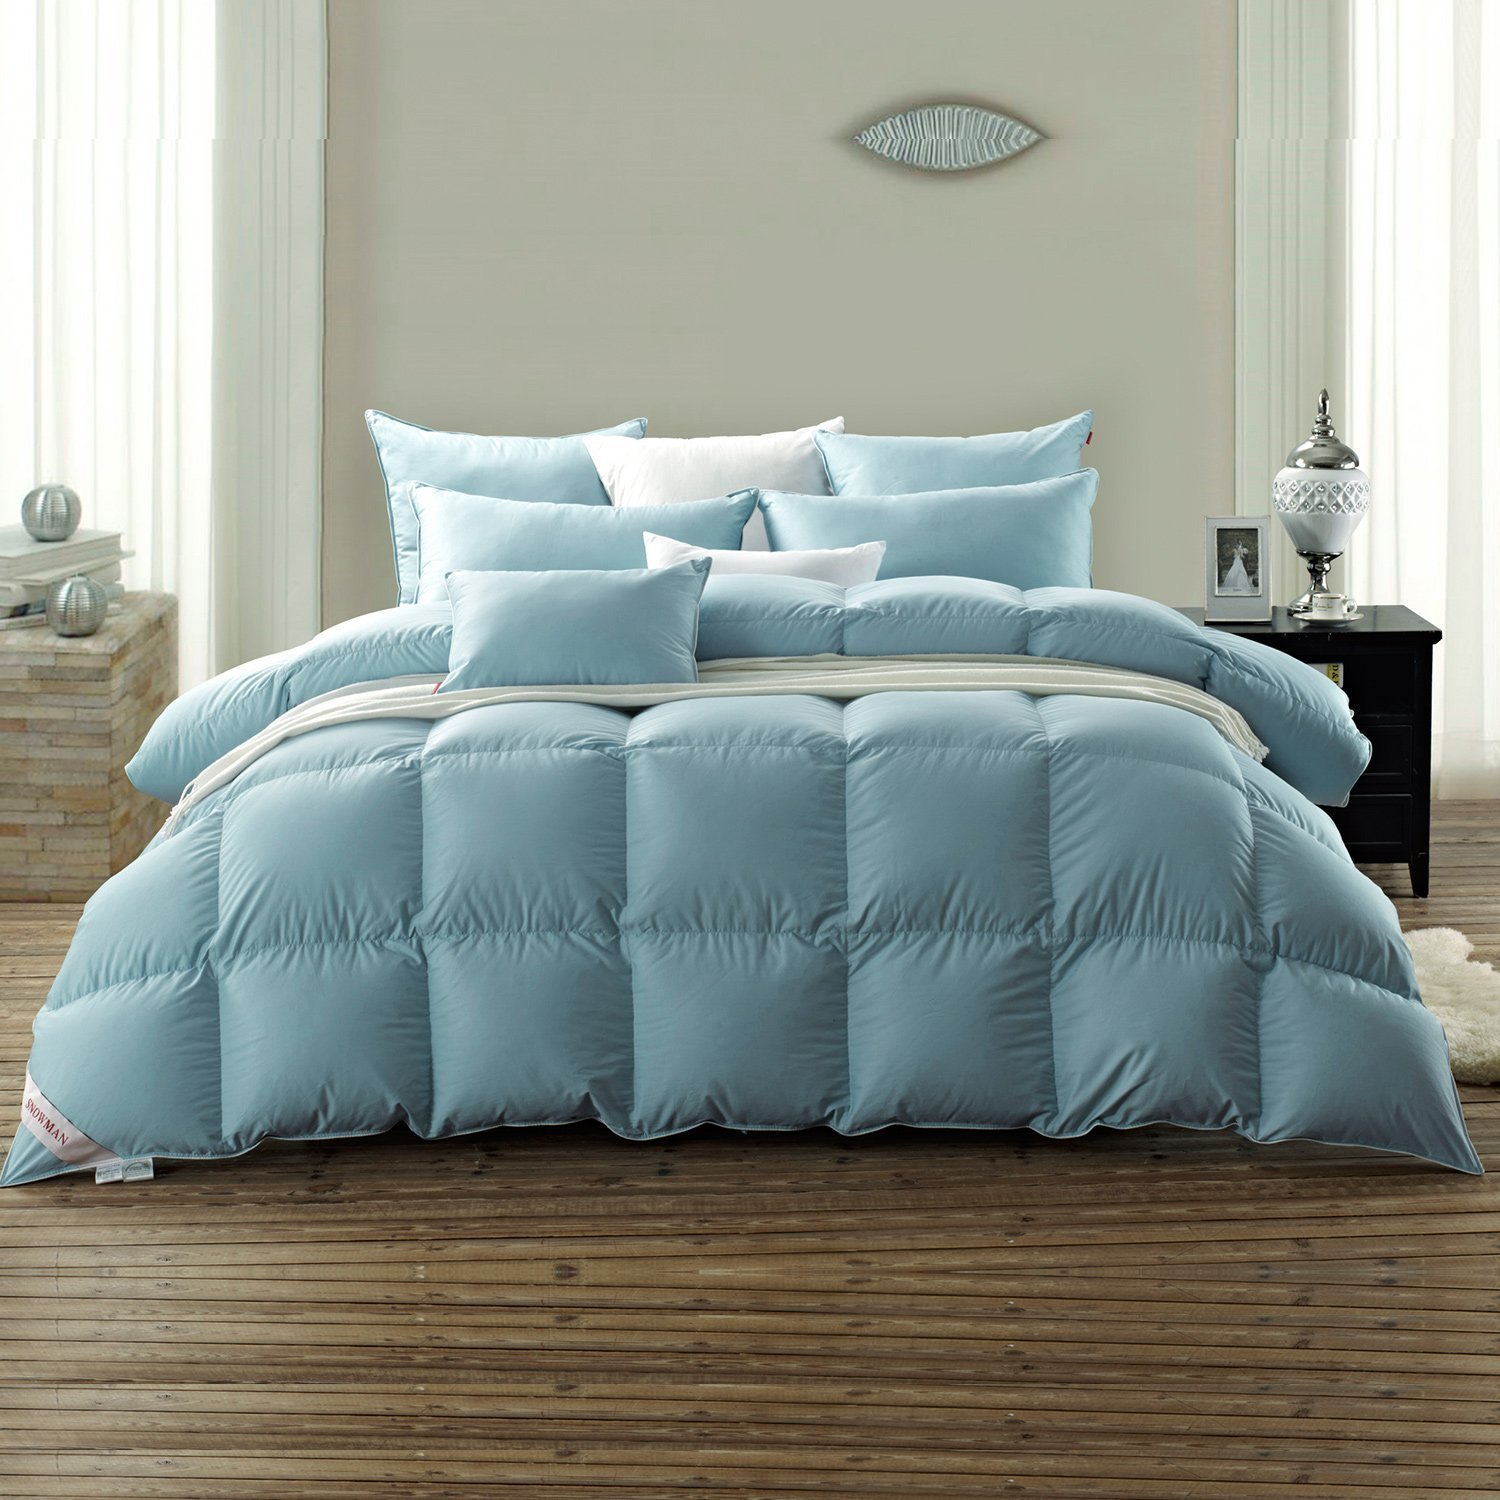 SNOWMAN Luxury White Goose Down Comforter Queen Size 100% Luxury Cotton Cover Down Proof Blue